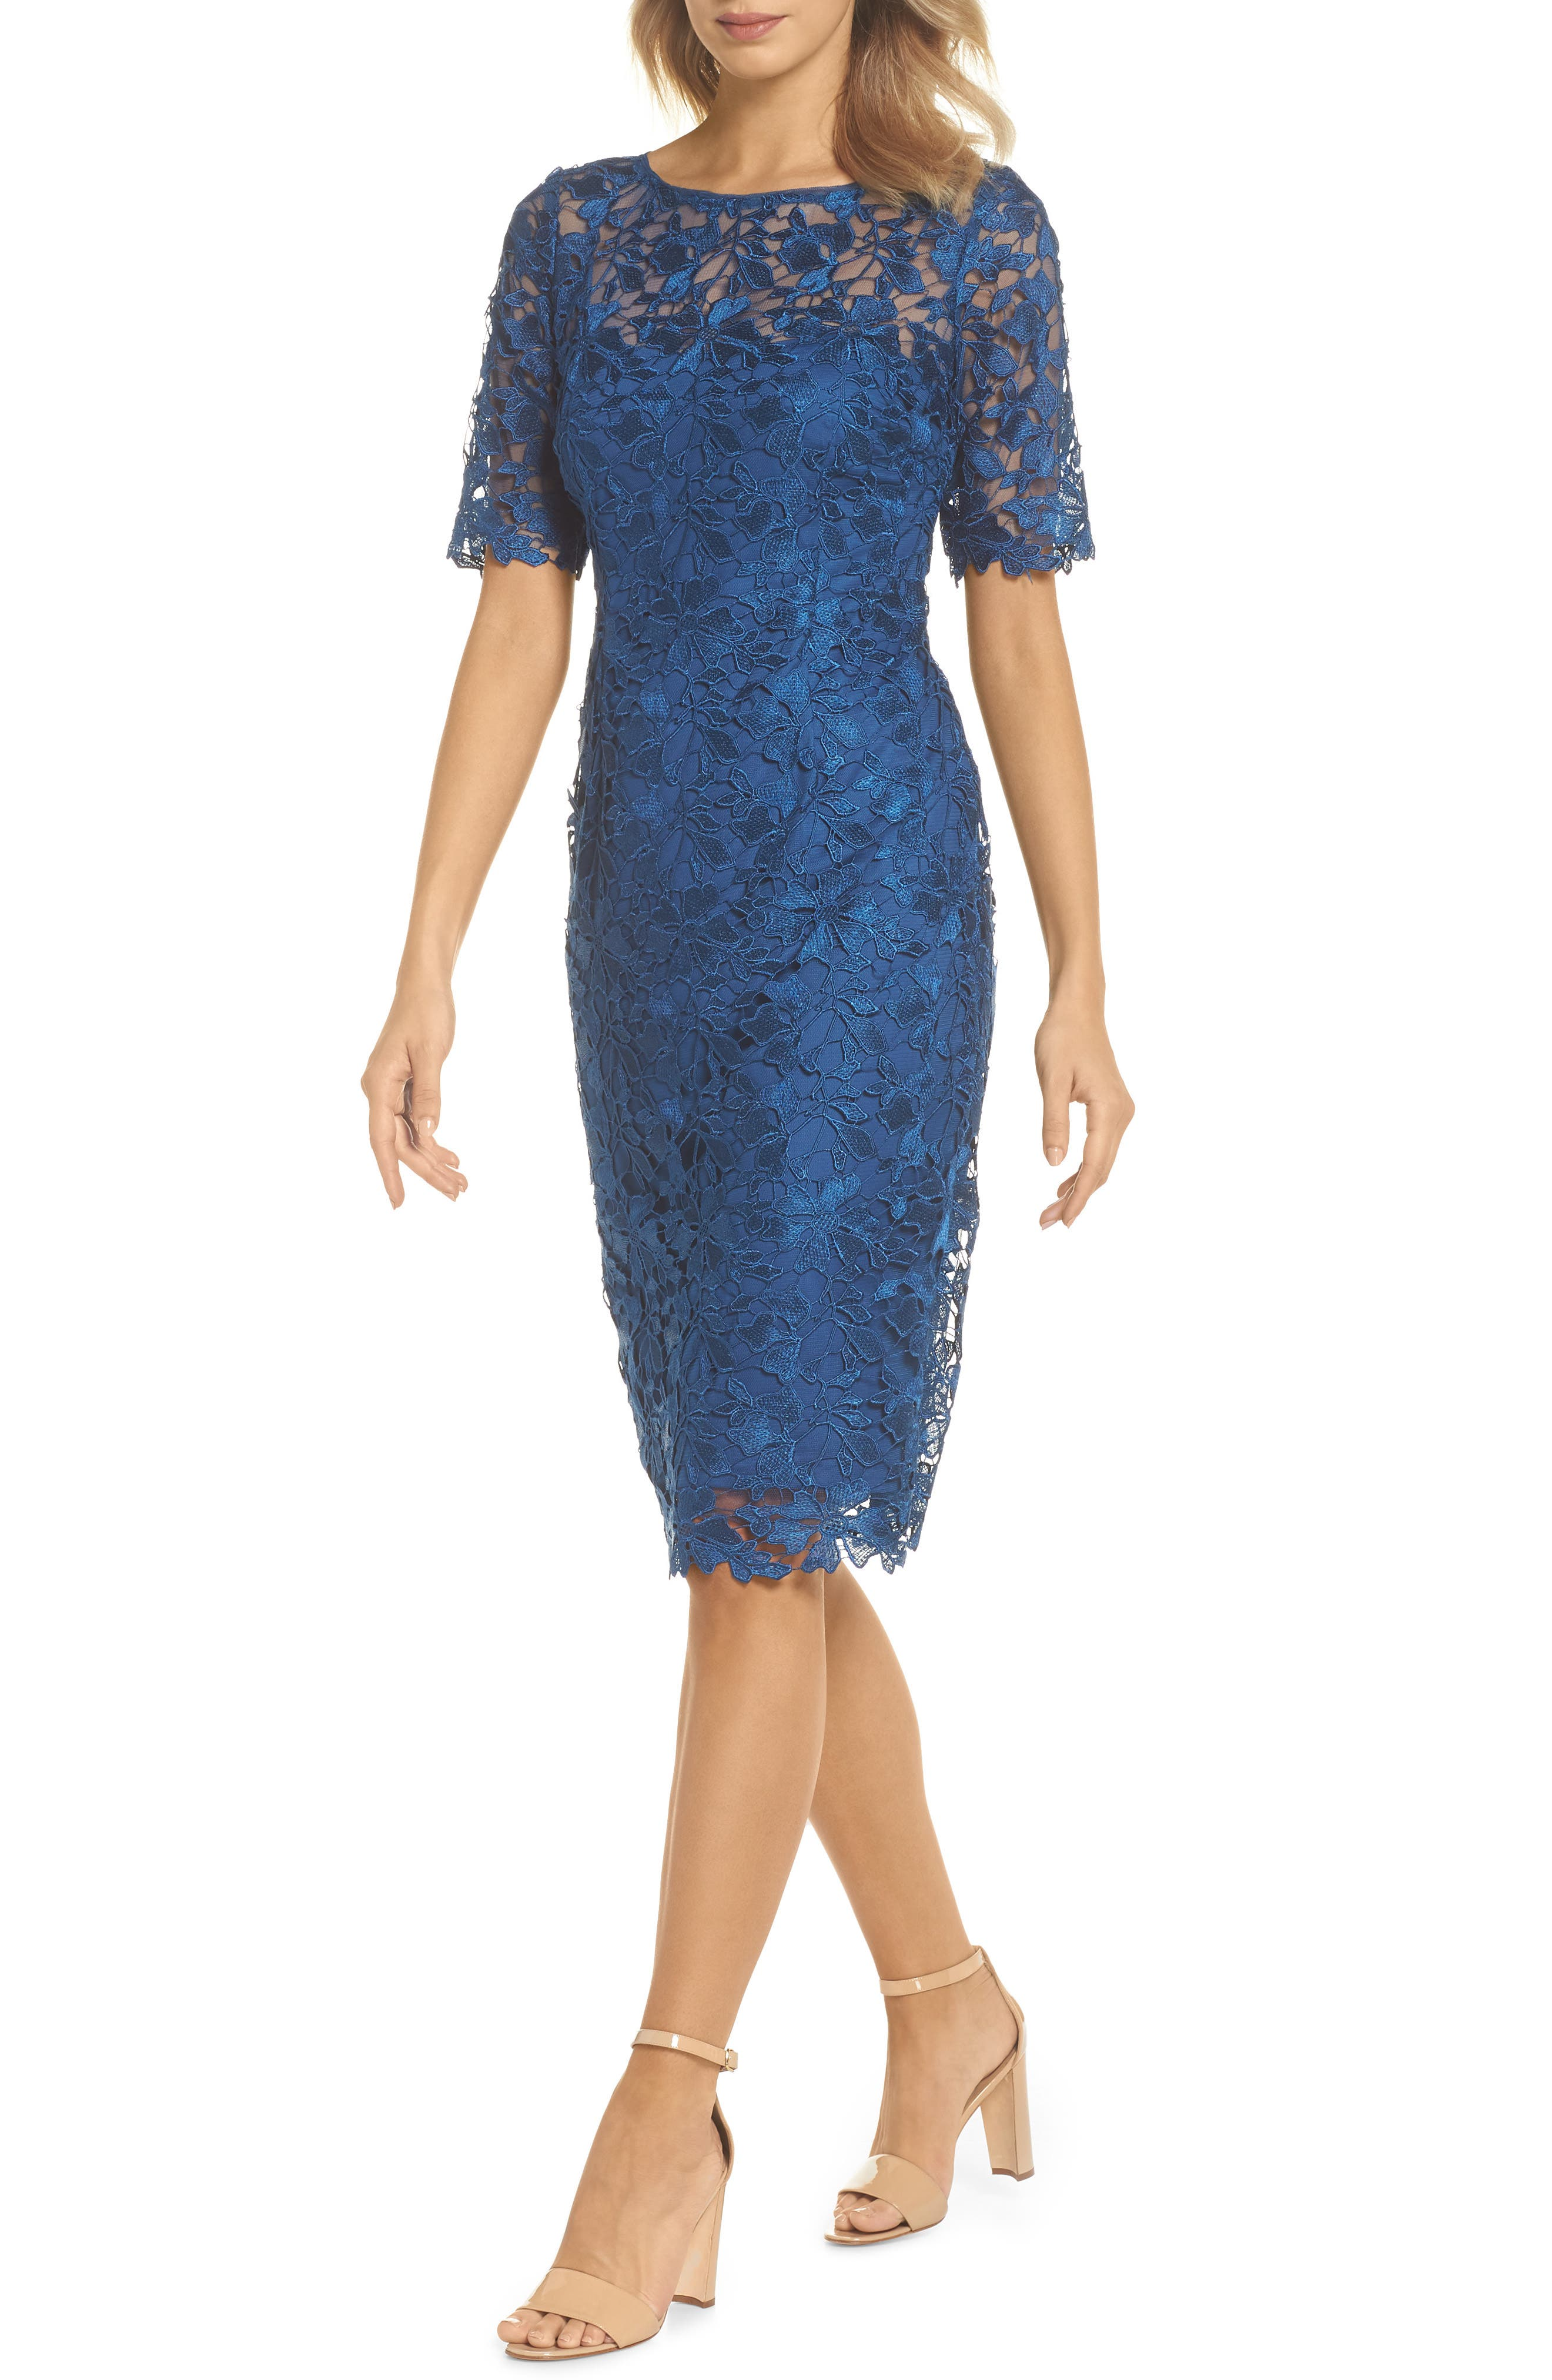 ADRIANNA PAPELL,                             Guipure Lace Sheath Dress,                             Main thumbnail 1, color,                             413